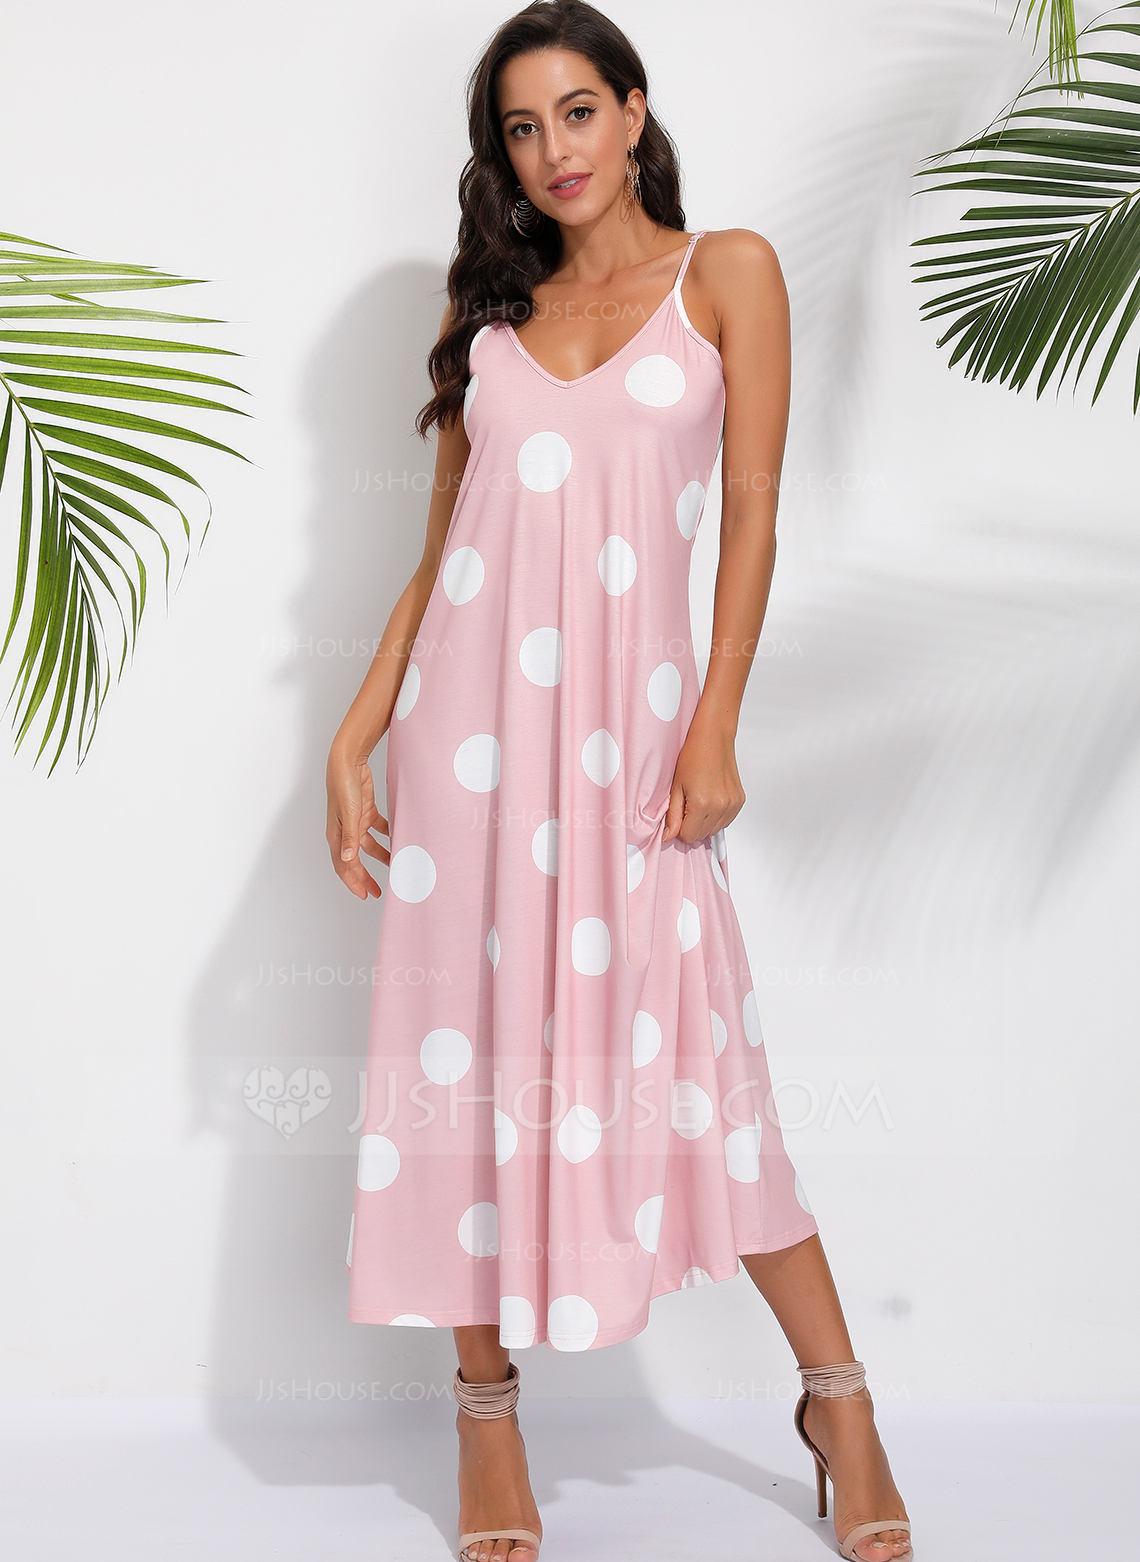 Polyester With PolkaDot Maxi Dress